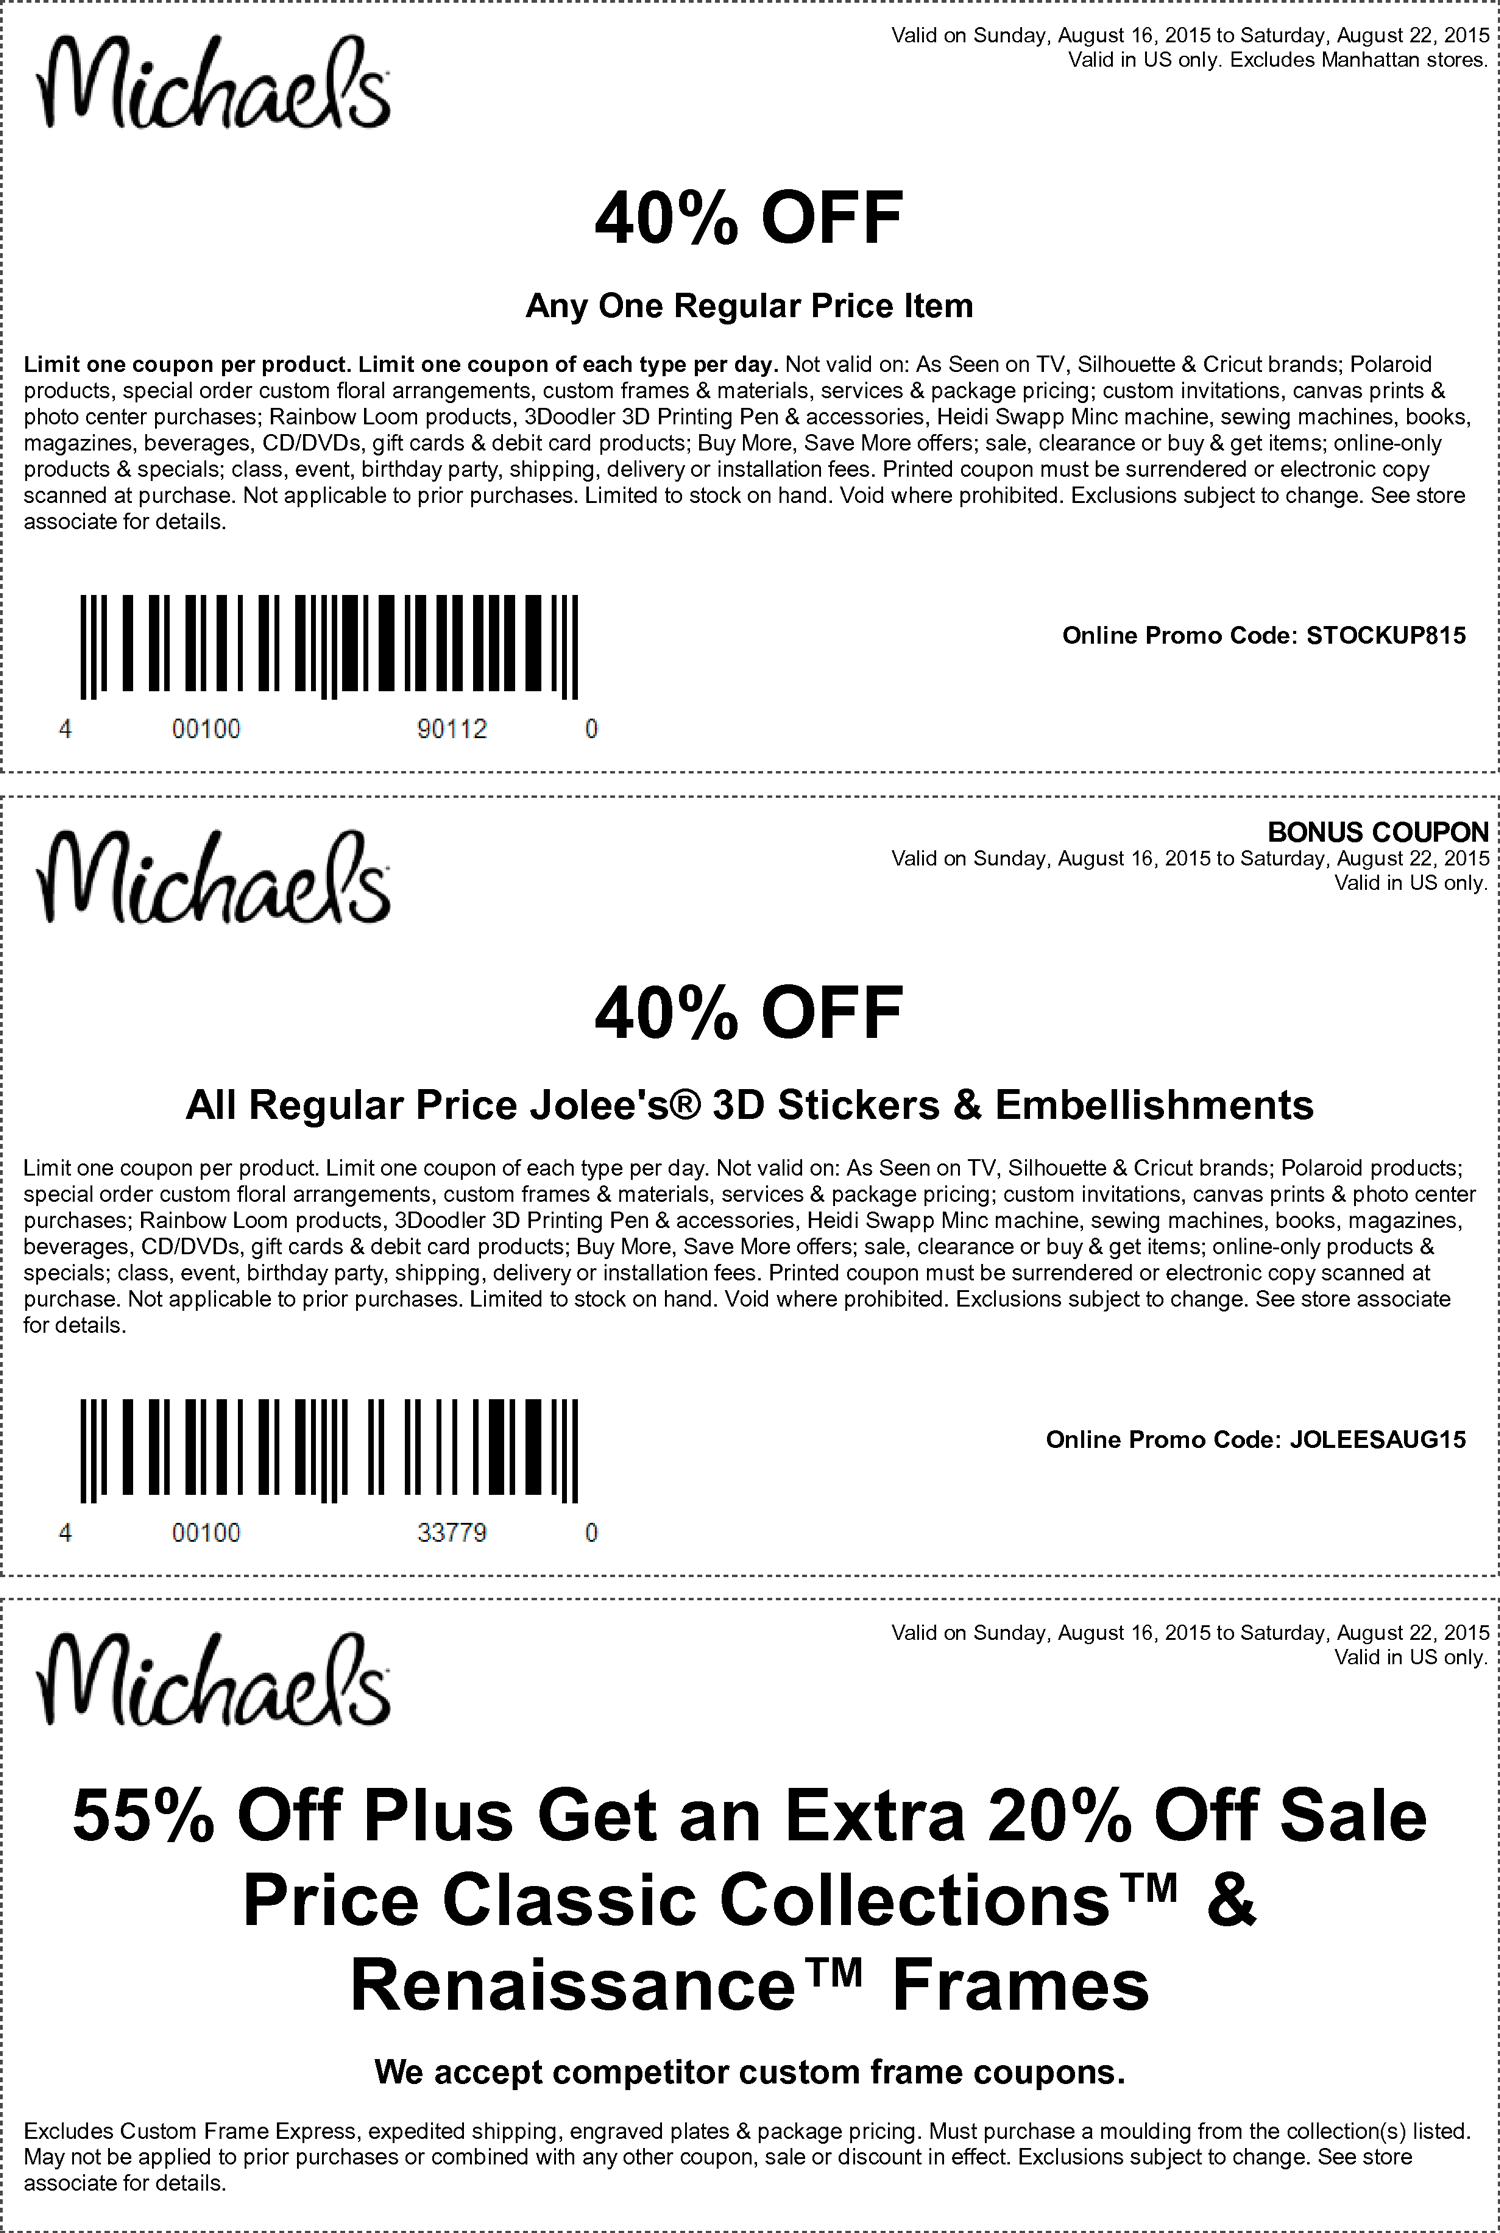 Michaels Coupon July 2019 40% off a single item & more at Michaels, or online via promo code STOCKUP815